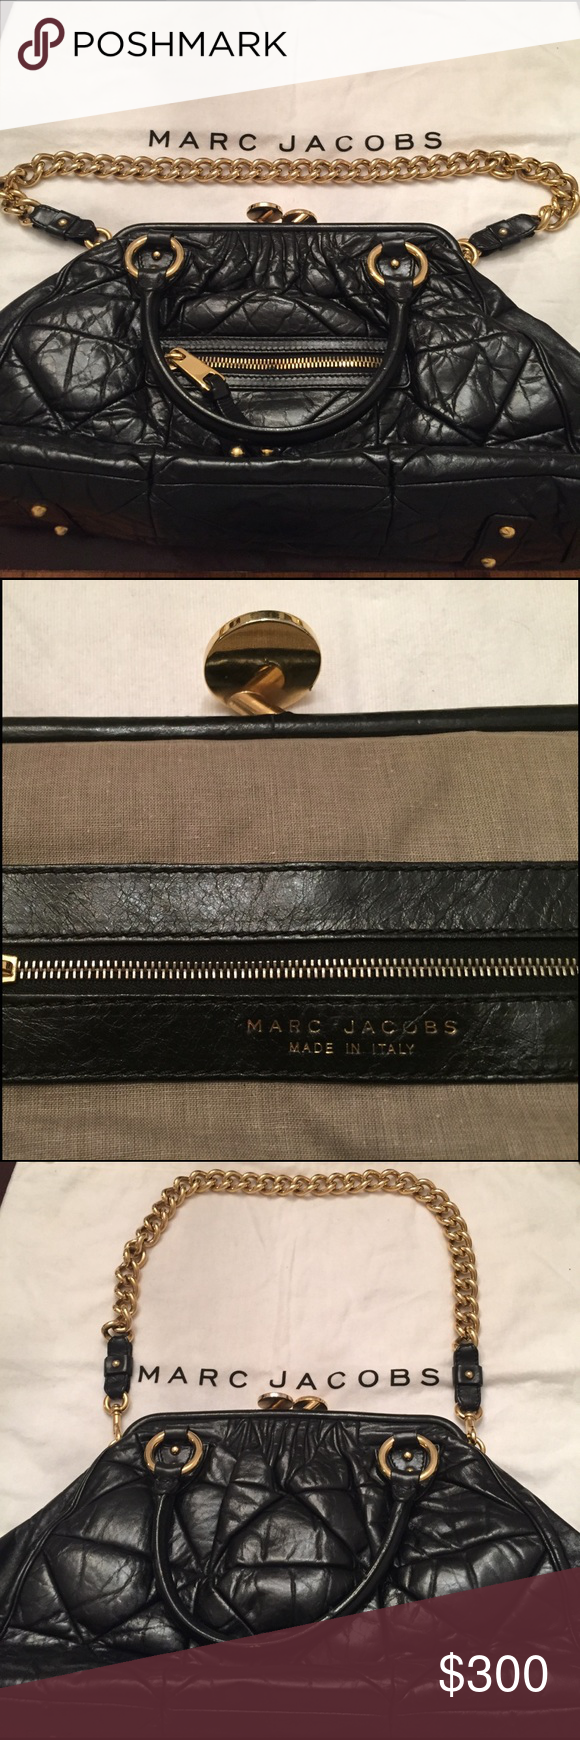 Marc Jacobs Black Stam Satchel Marc Jacobs Stam Satchel. Great Condition inside and out. Barely used! Like New! Marc Jacobs Bags Satchels